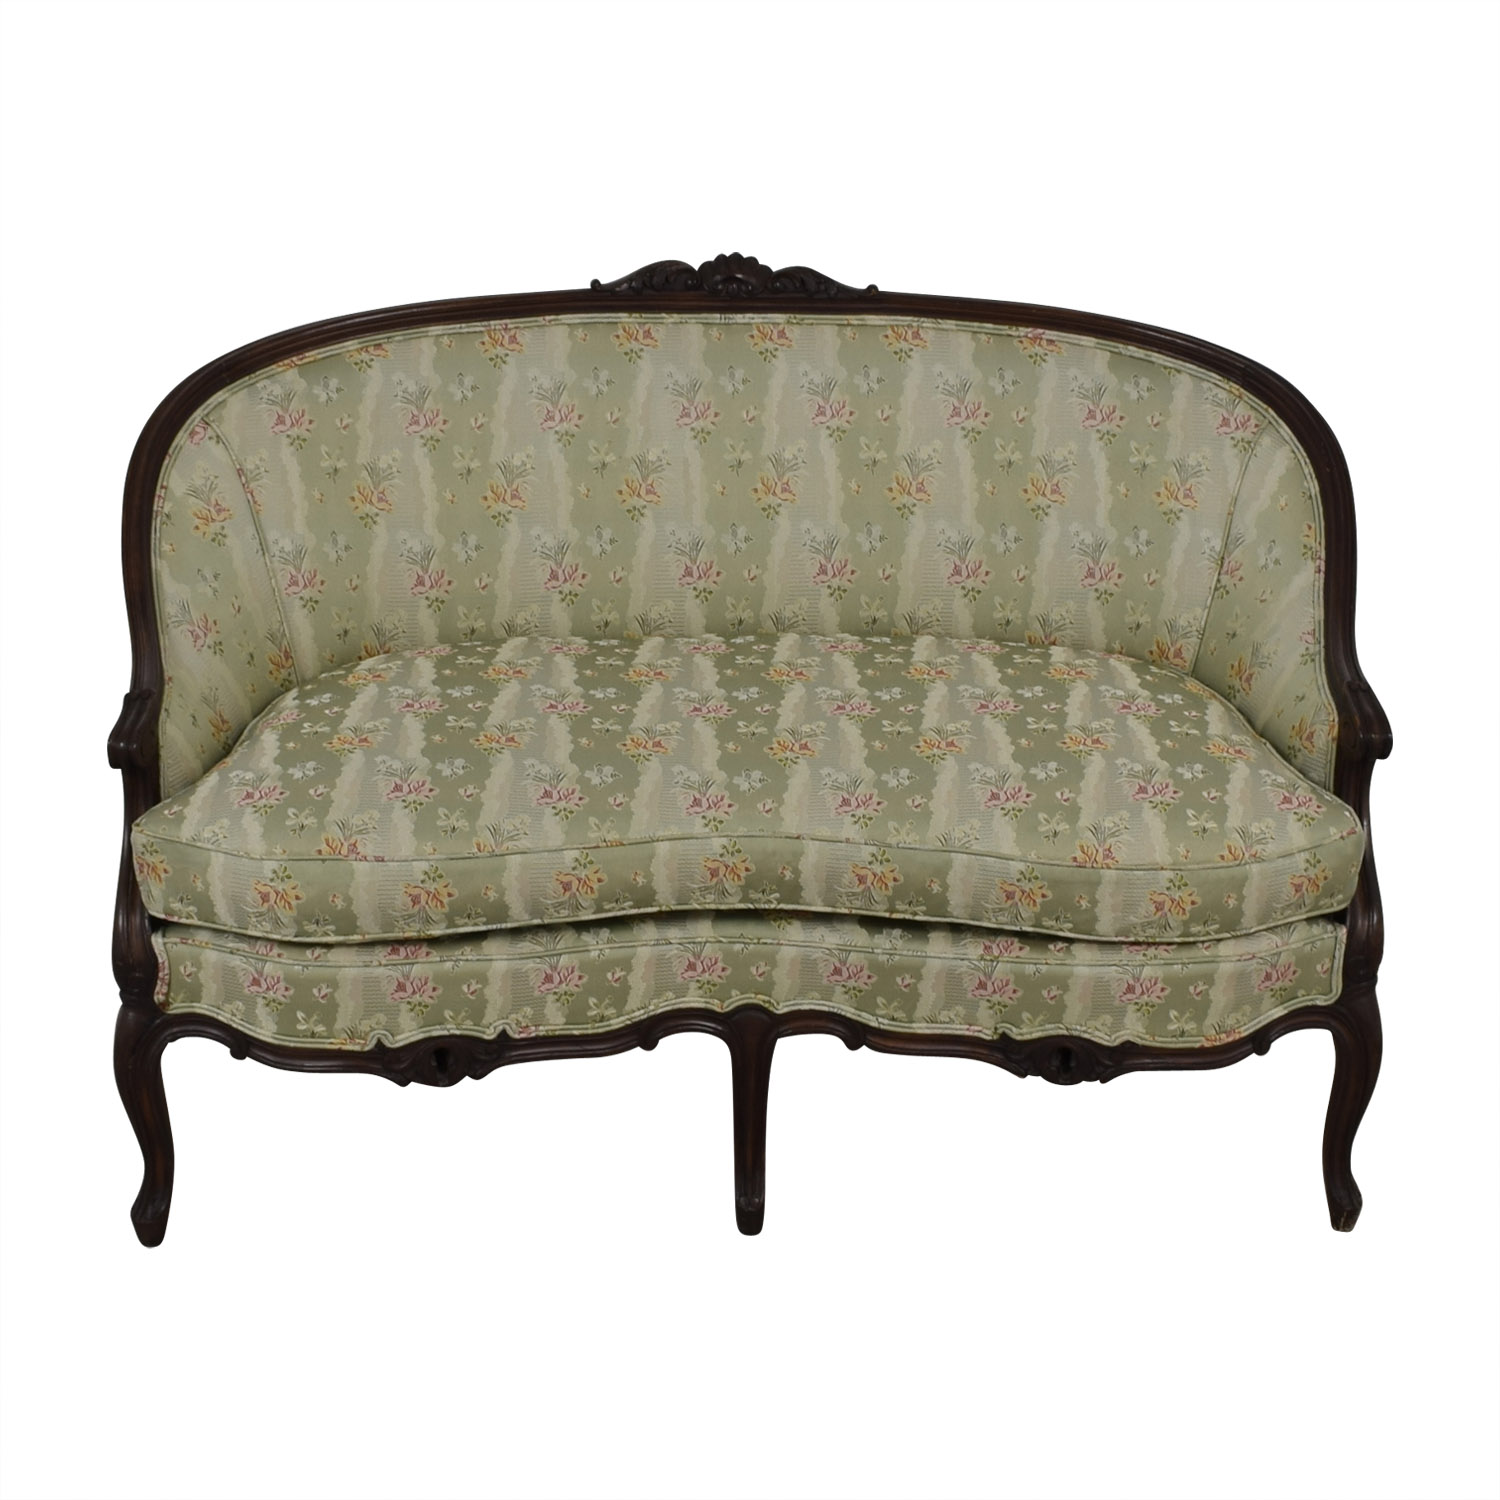 Antique French Floral Upholstered Single Cushion Loveseat nyc